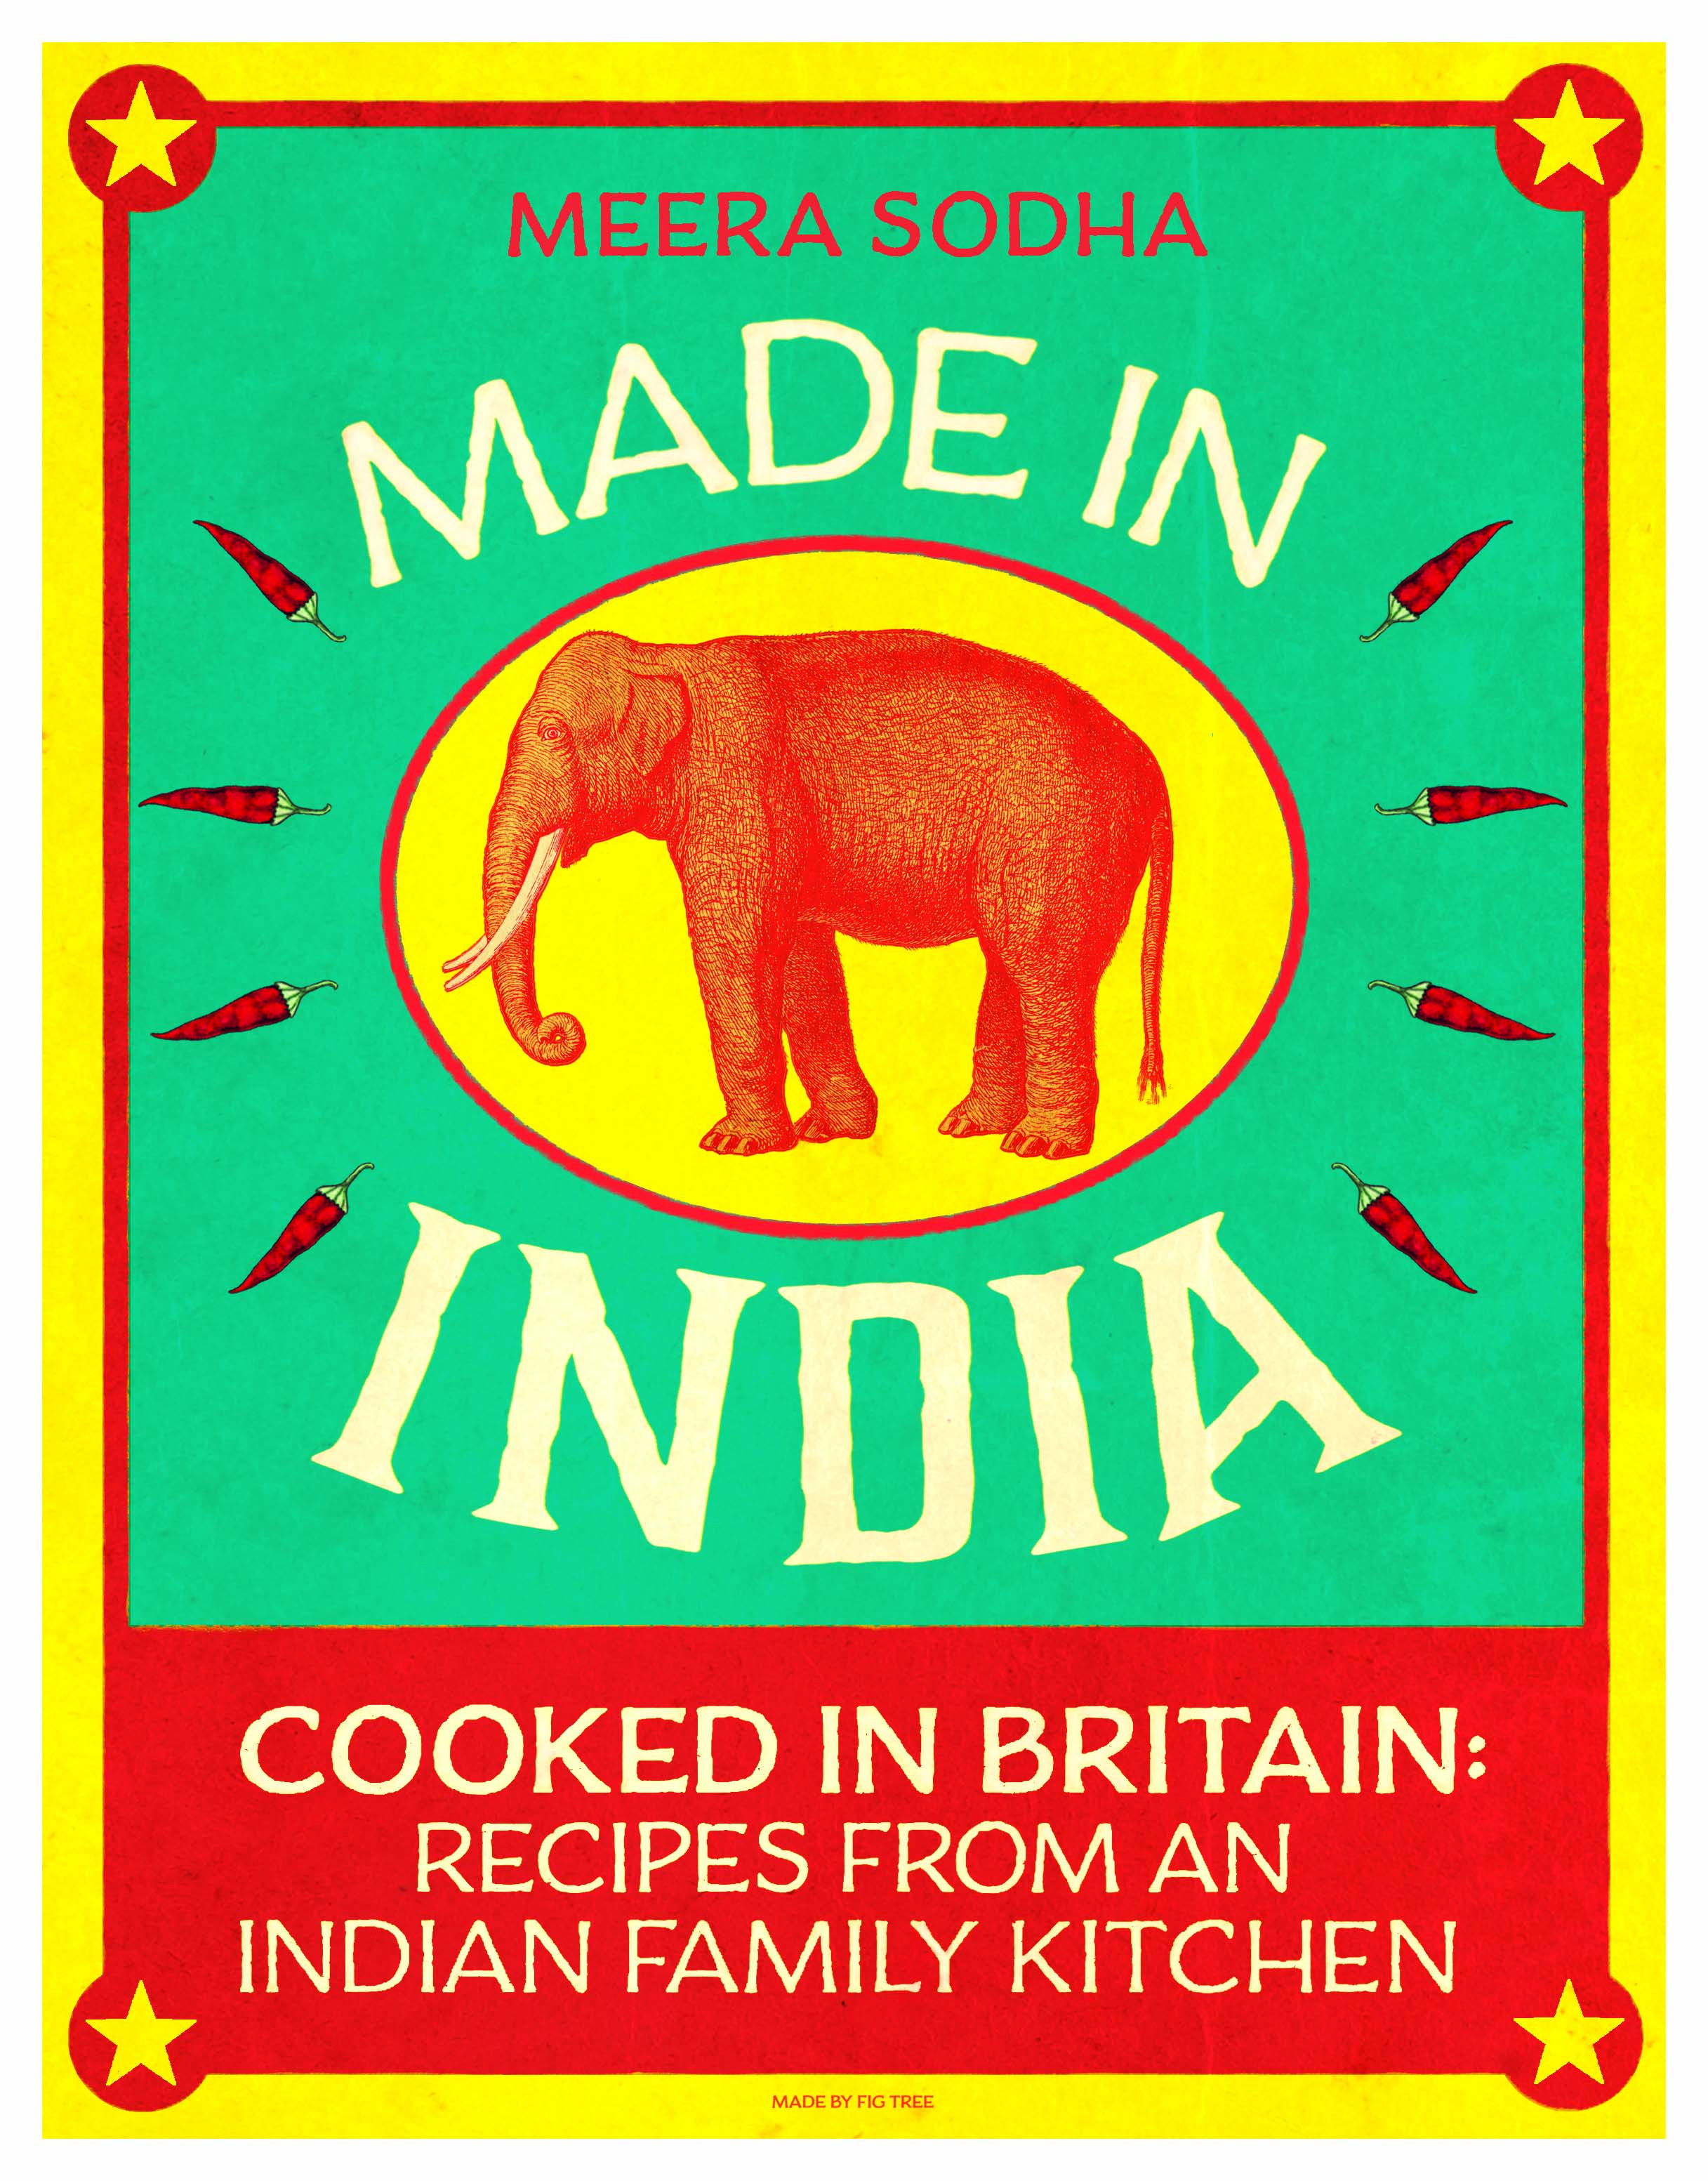 Home cooked Indian food is hot, fresh chapattis, made in minutes ...